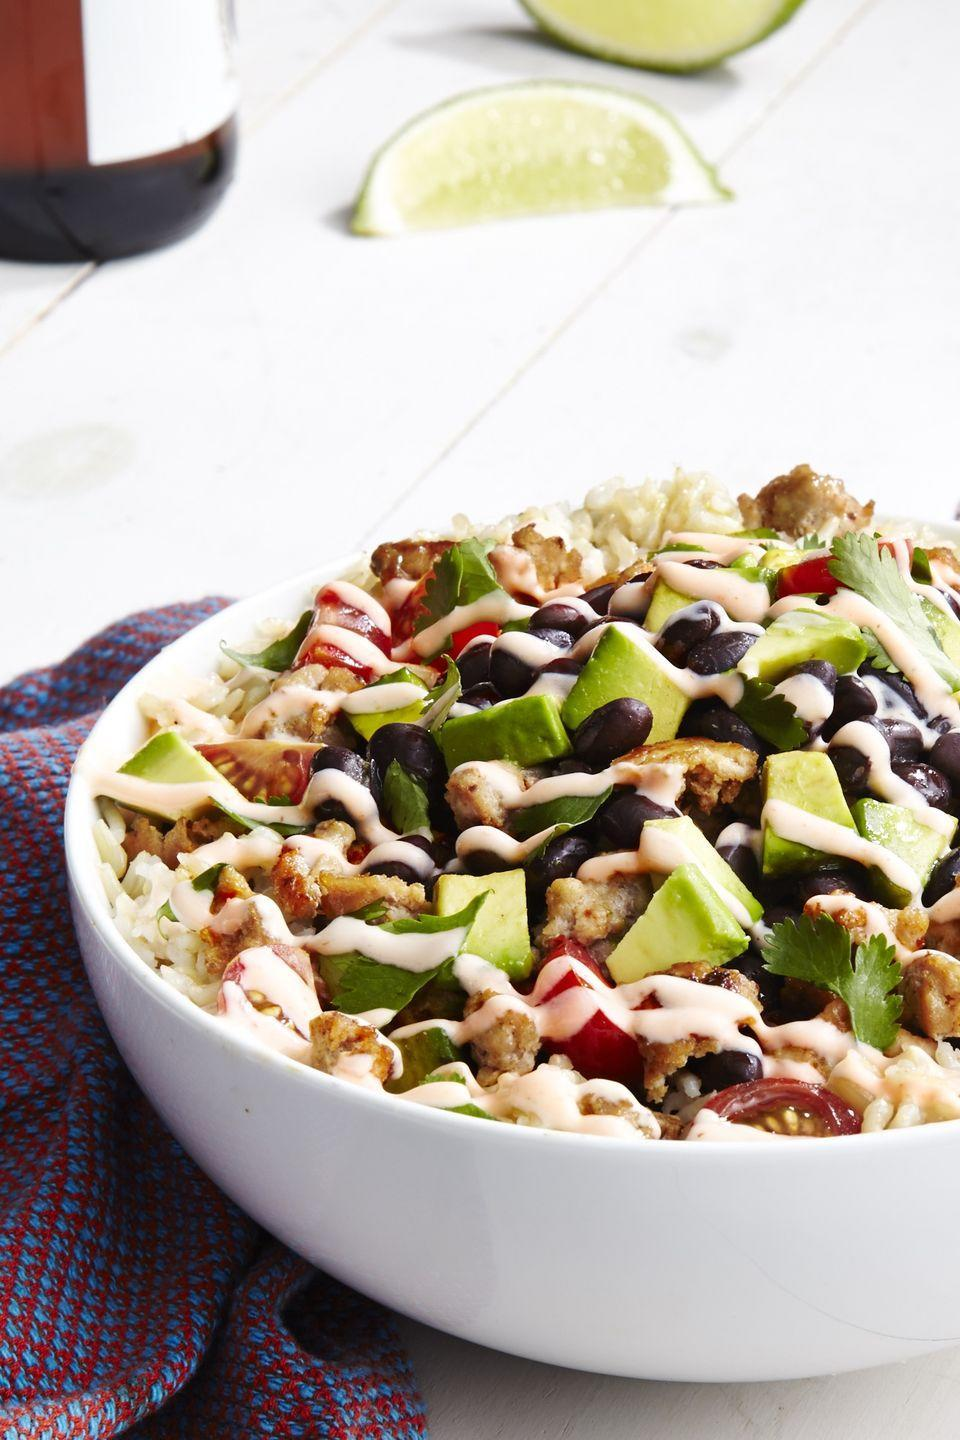 """<p>All the flavors of a burrito without all the calories.</p><p>Get the recipe from <a href=""""https://www.delish.com/cooking/recipe-ideas/recipes/a46525/skinny-burrito-bowl-recipe/"""" rel=""""nofollow noopener"""" target=""""_blank"""" data-ylk=""""slk:Delish"""" class=""""link rapid-noclick-resp"""">Delish</a>.</p>"""